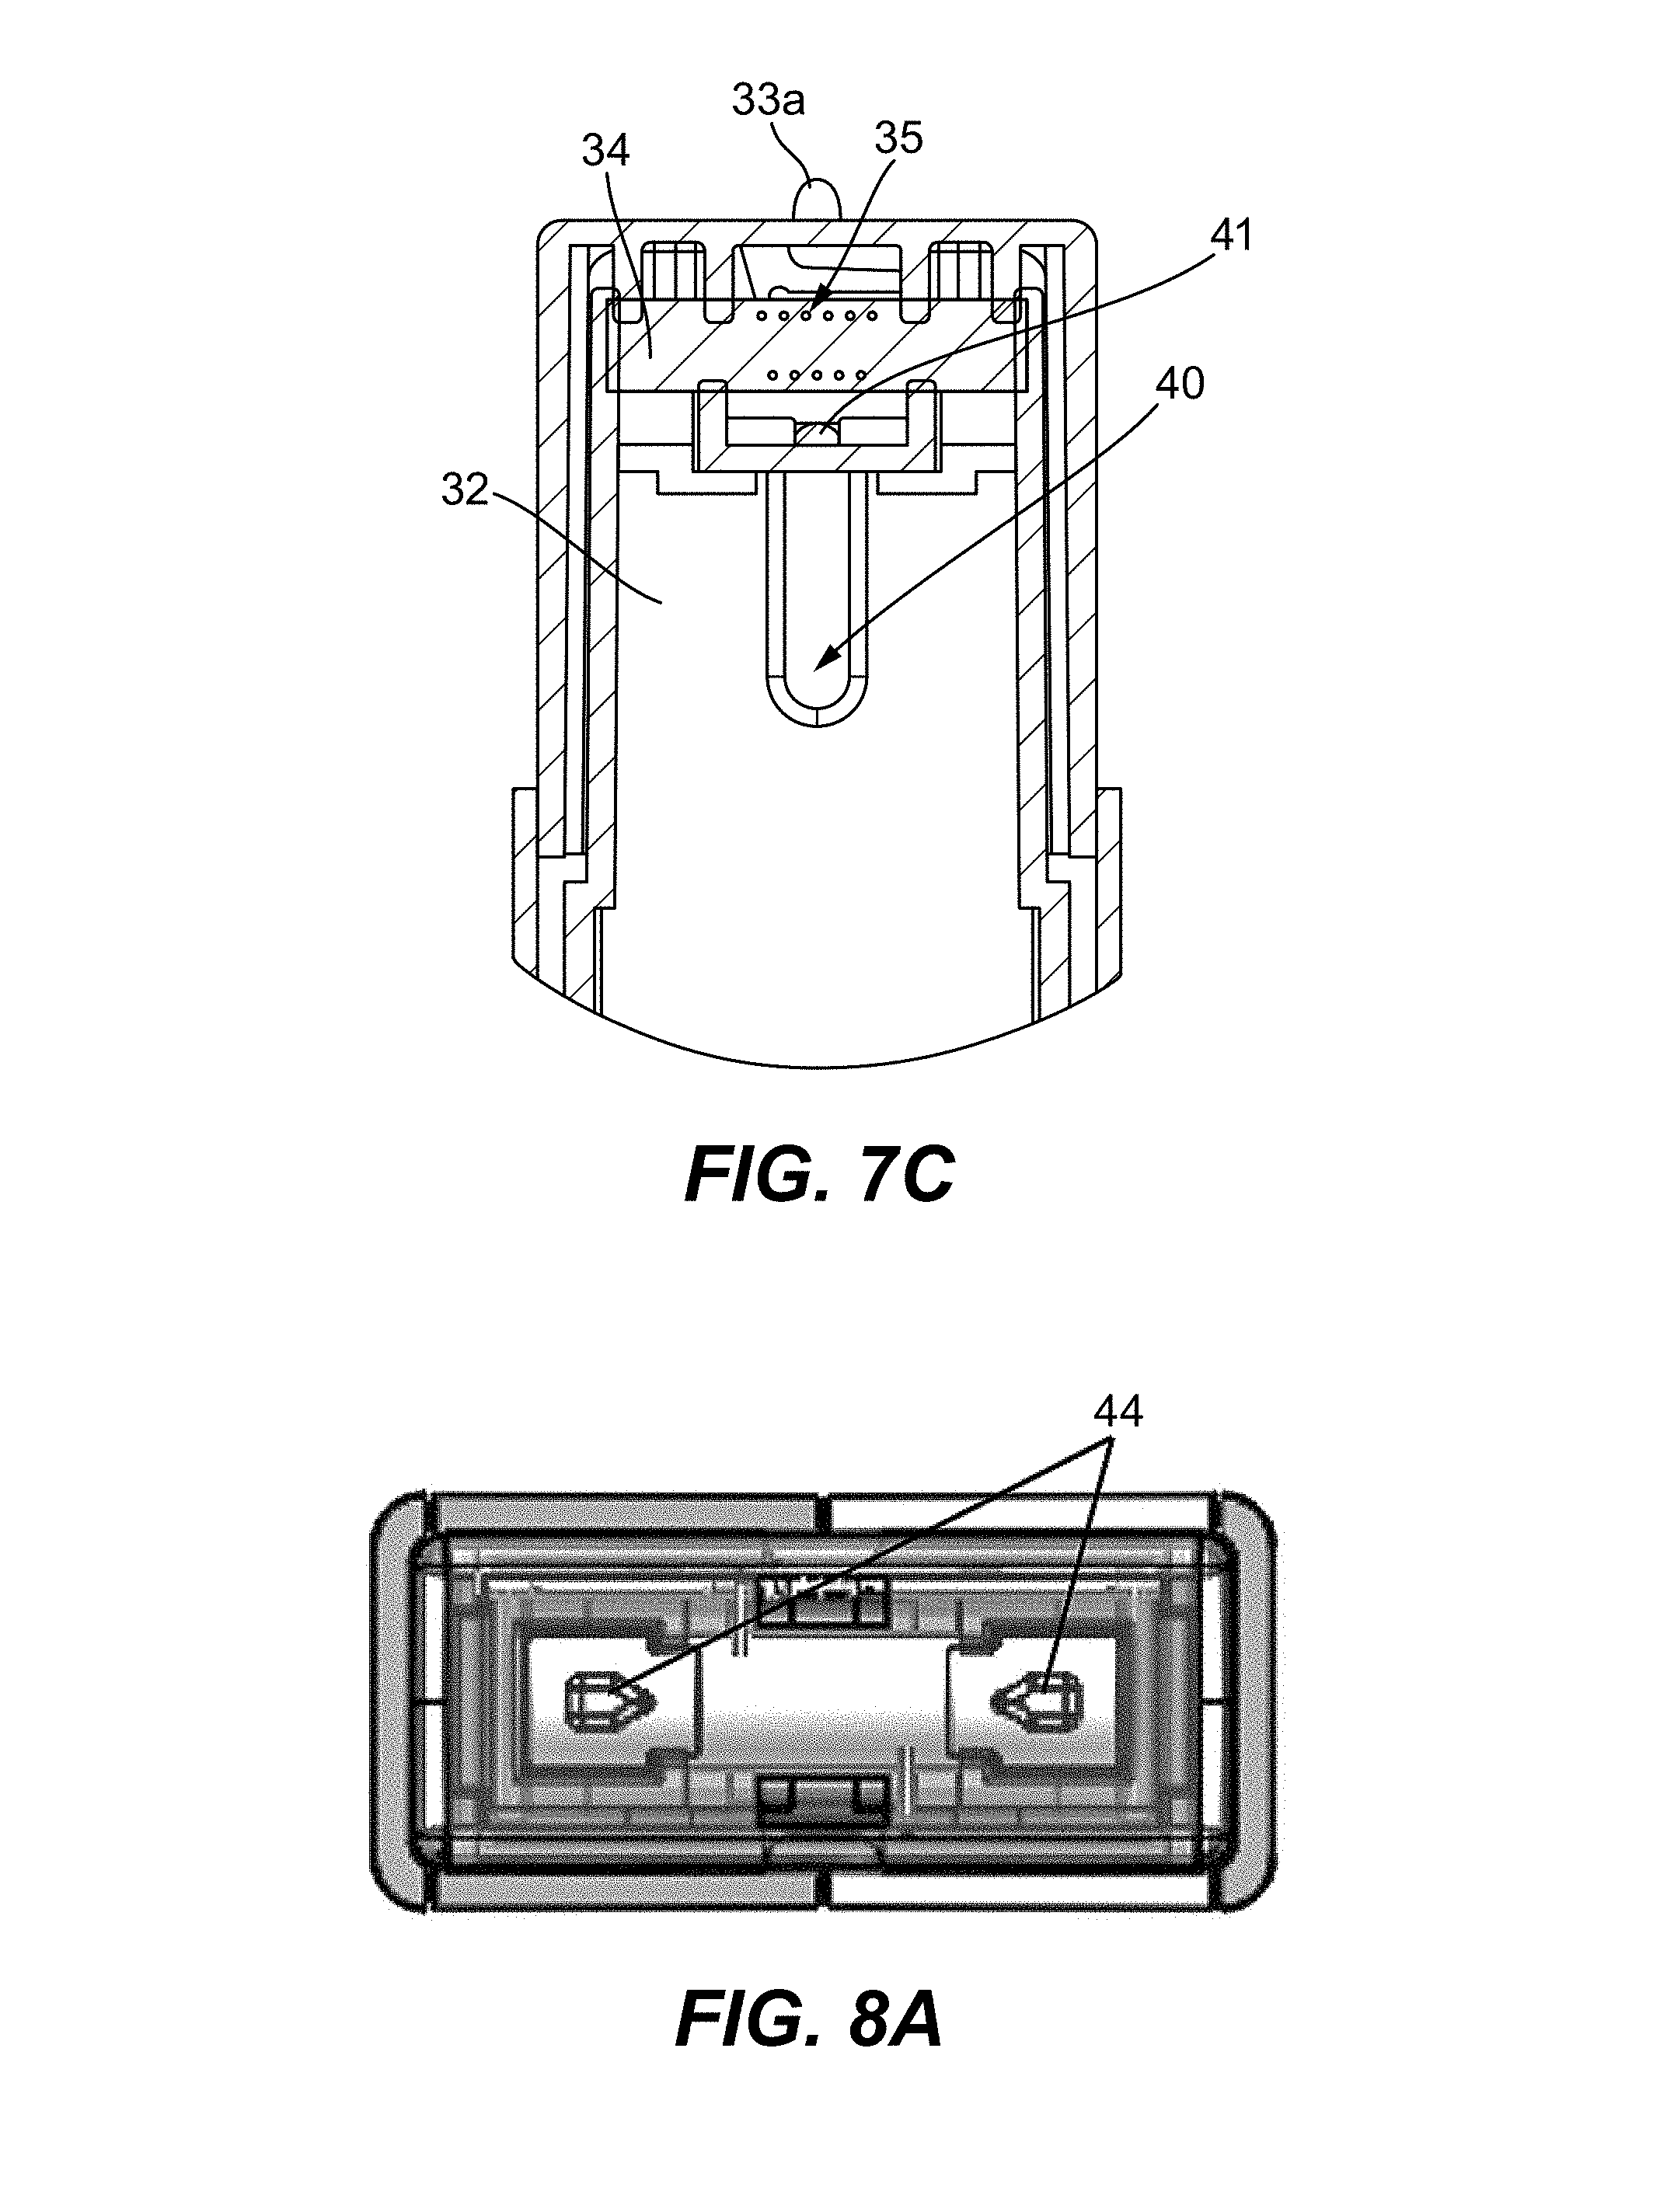 Us10045568b2 Vaporization Device Systems And Methods Google Patents Wire Together With Somfy Motor Wiring Diagram On Usb To Aux Cable